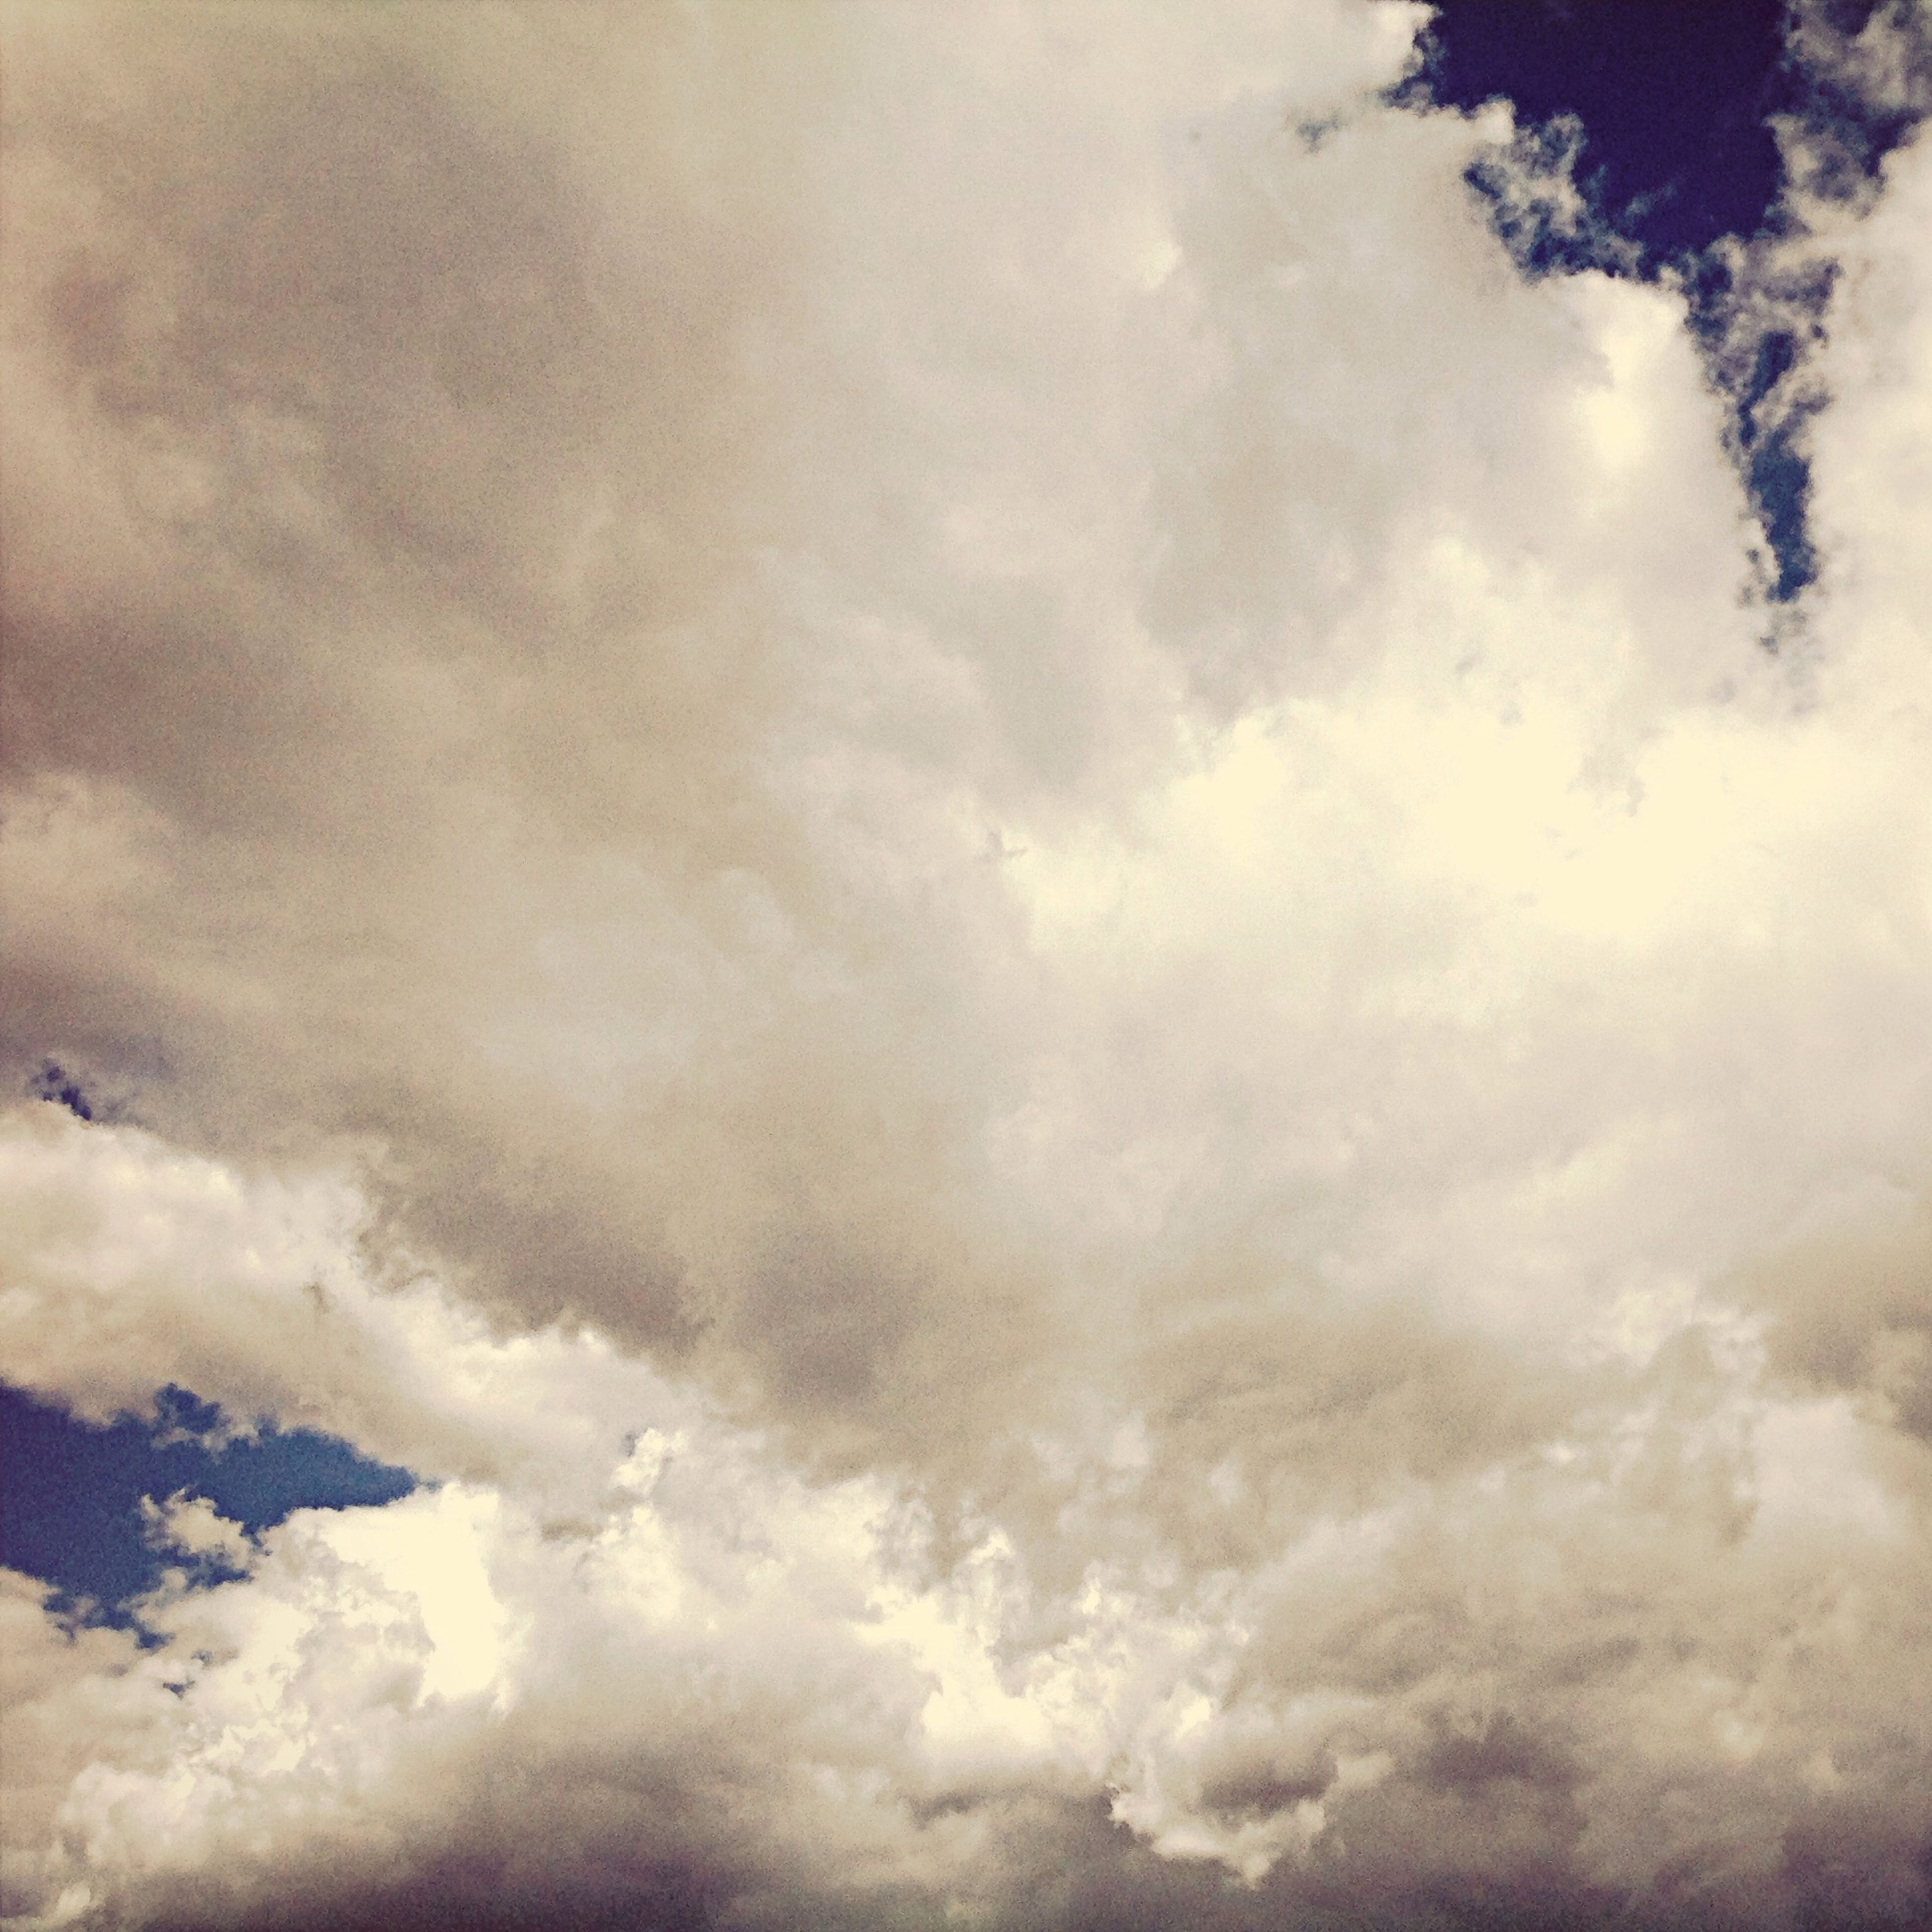 cloud - sky, sky, cloudy, beauty in nature, scenics, weather, tranquility, cloudscape, tranquil scene, low angle view, nature, sky only, overcast, cloud, idyllic, backgrounds, full frame, outdoors, storm cloud, no people